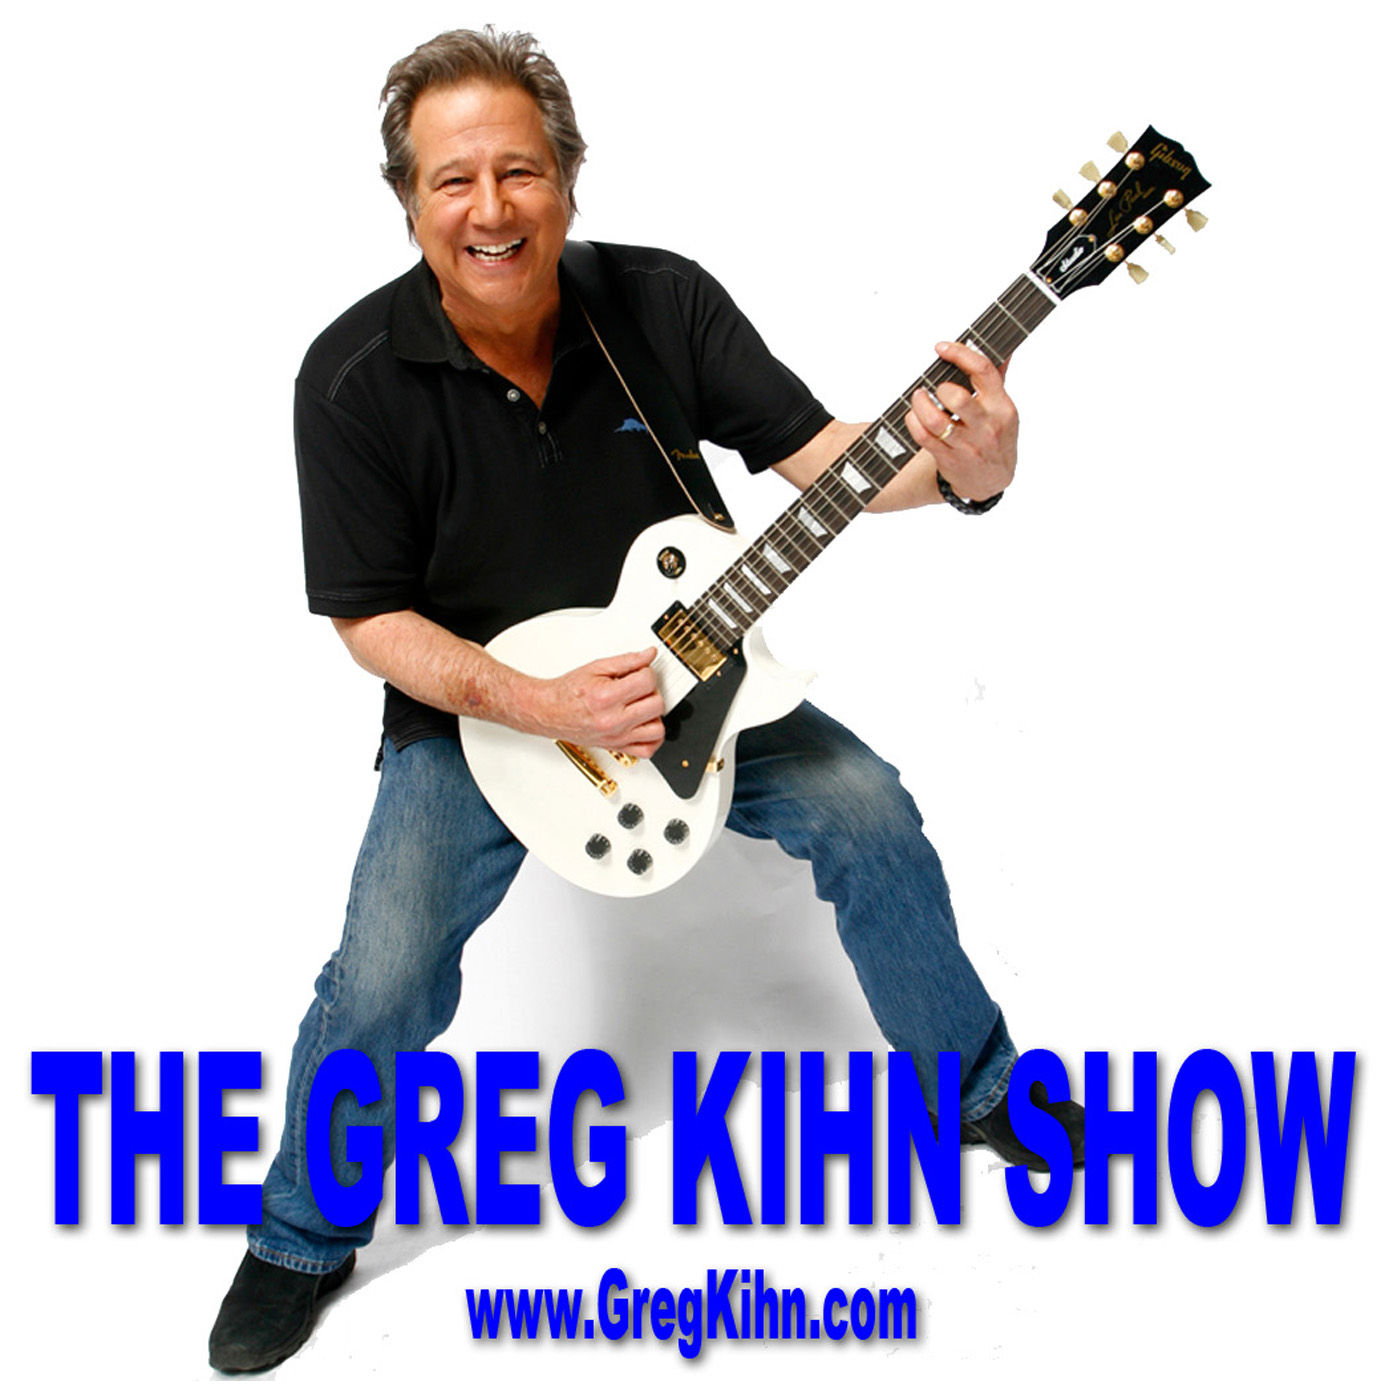 The Greg Kihn Show will be back with a vengeance after the first of the year.